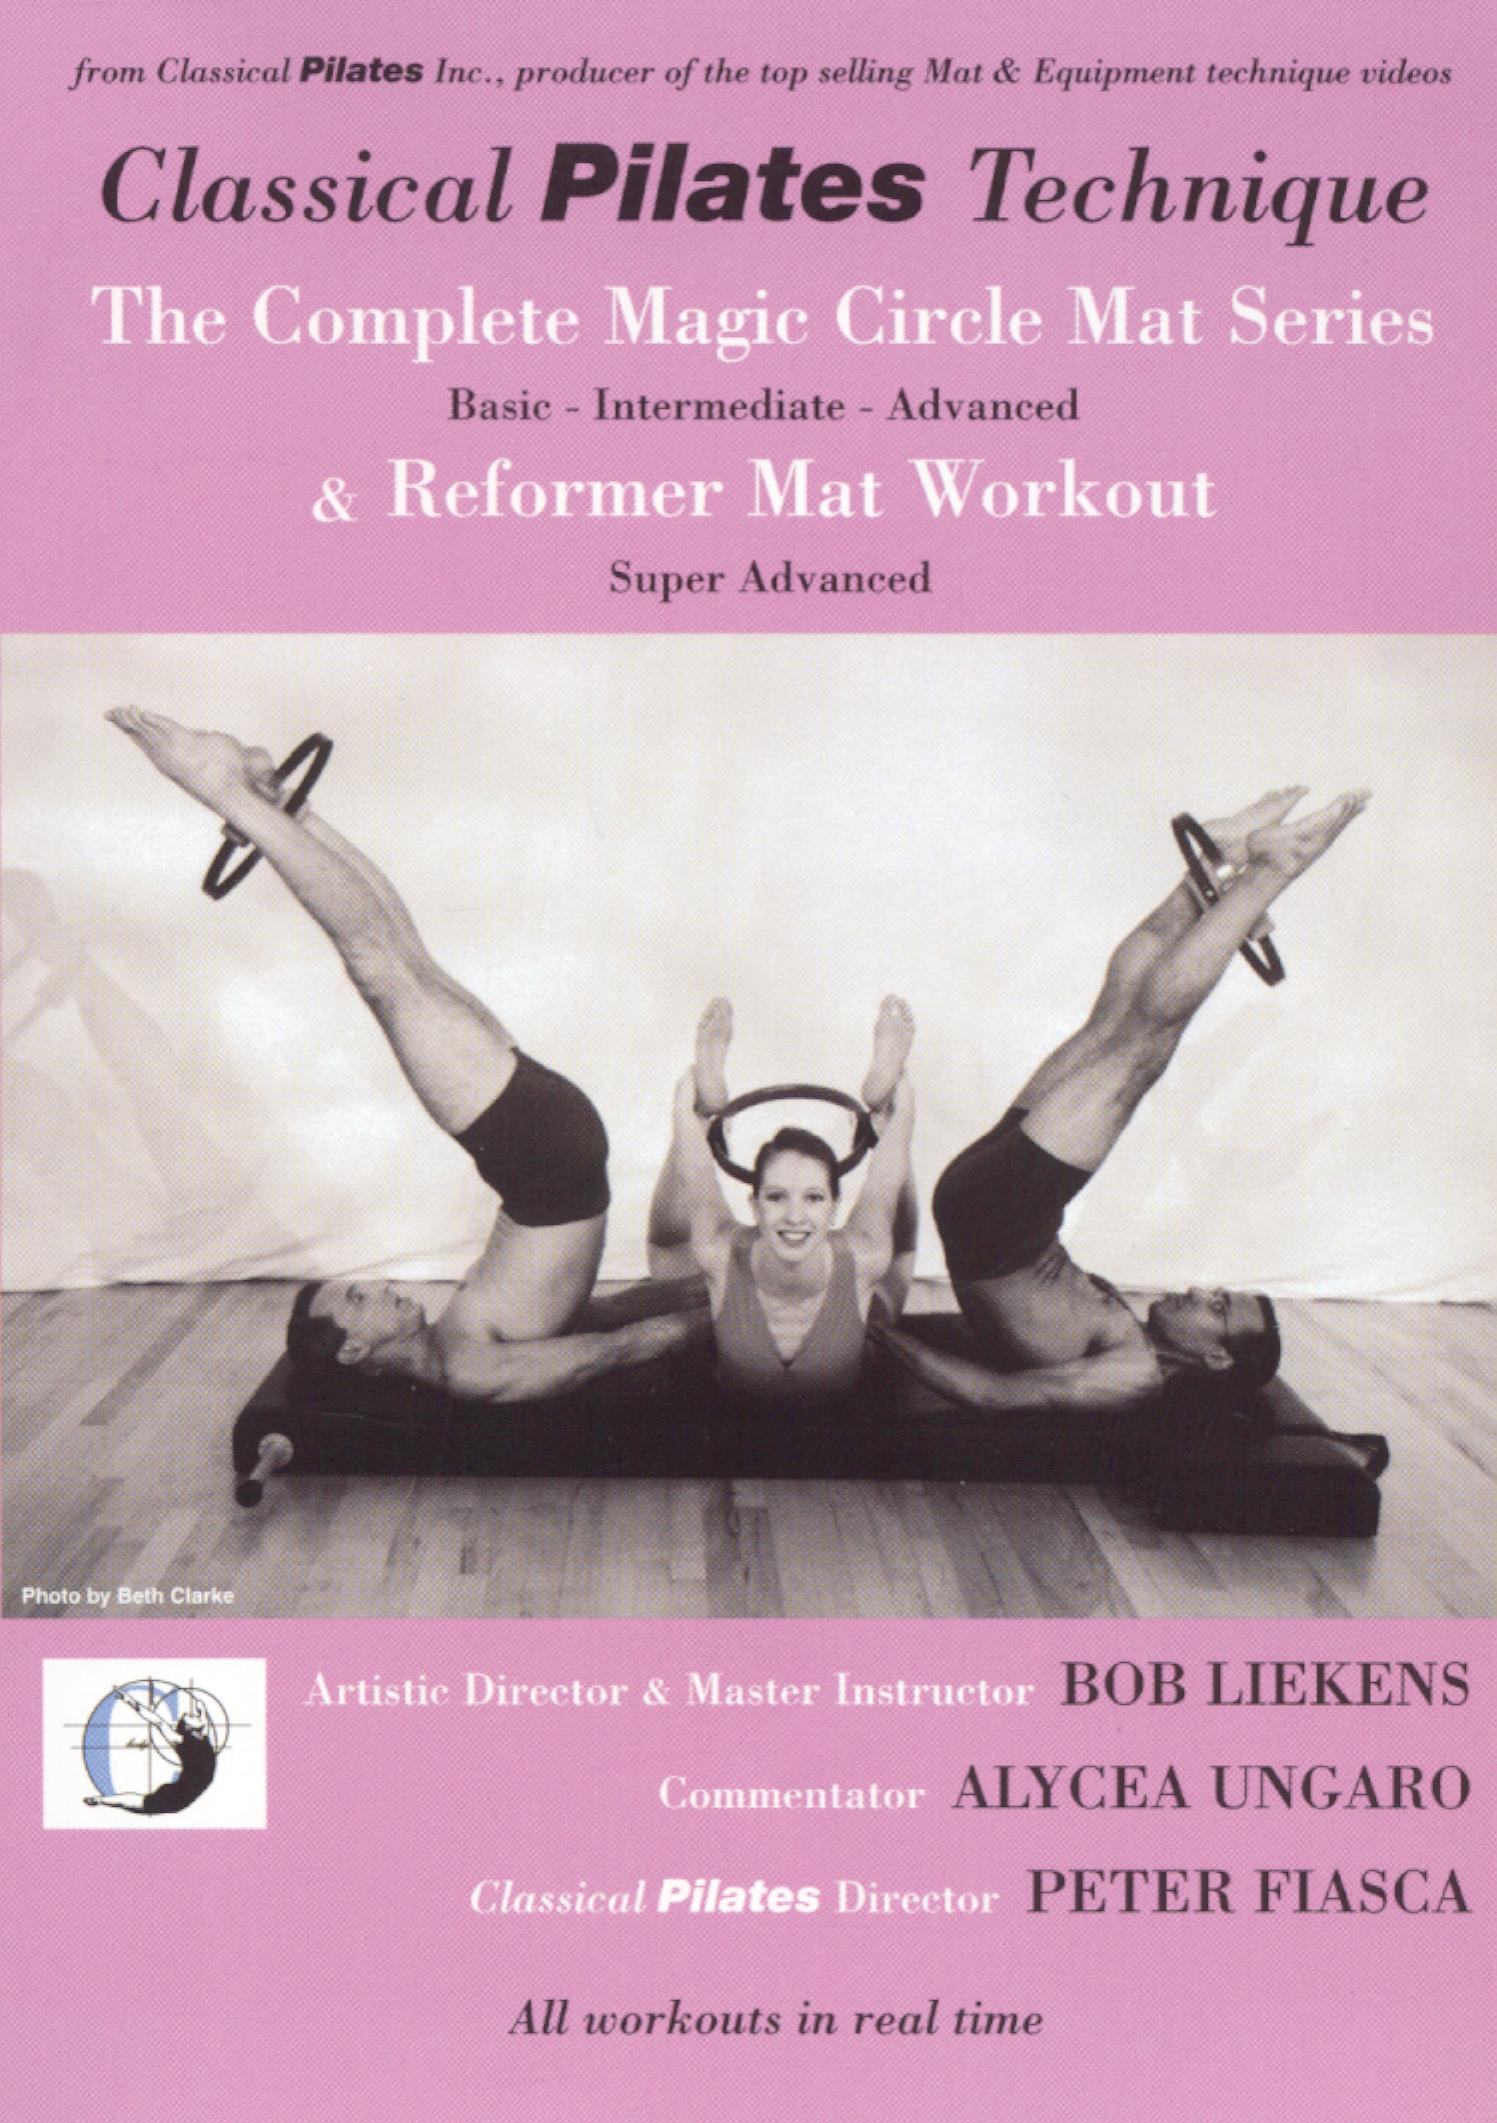 Classical Pilates Technique: The Complete Magic Circle Mat Series and Reformer Mat Workout